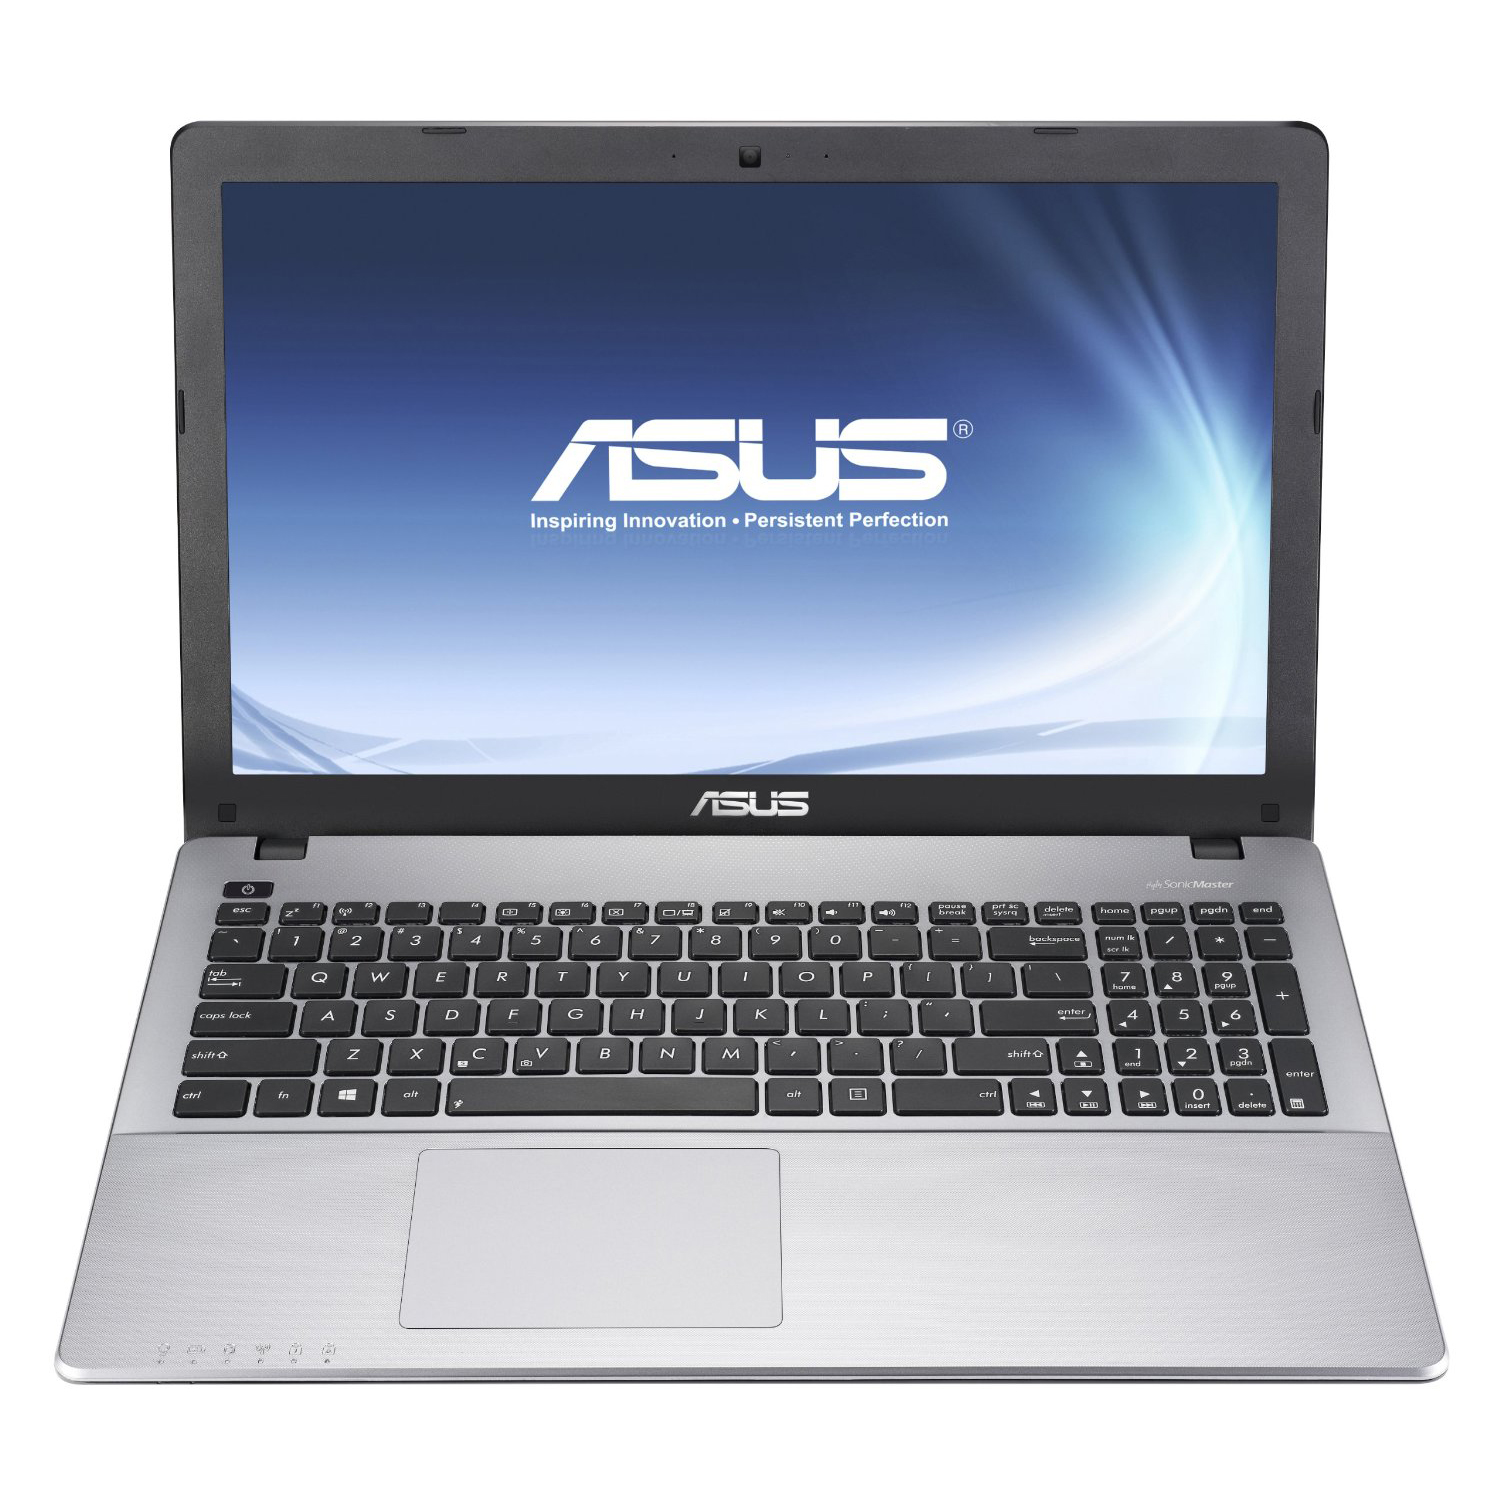 asus-x550-core-i5-3337u-ram-4gb-hdd-500gb-nvidia-gt-720-156-led